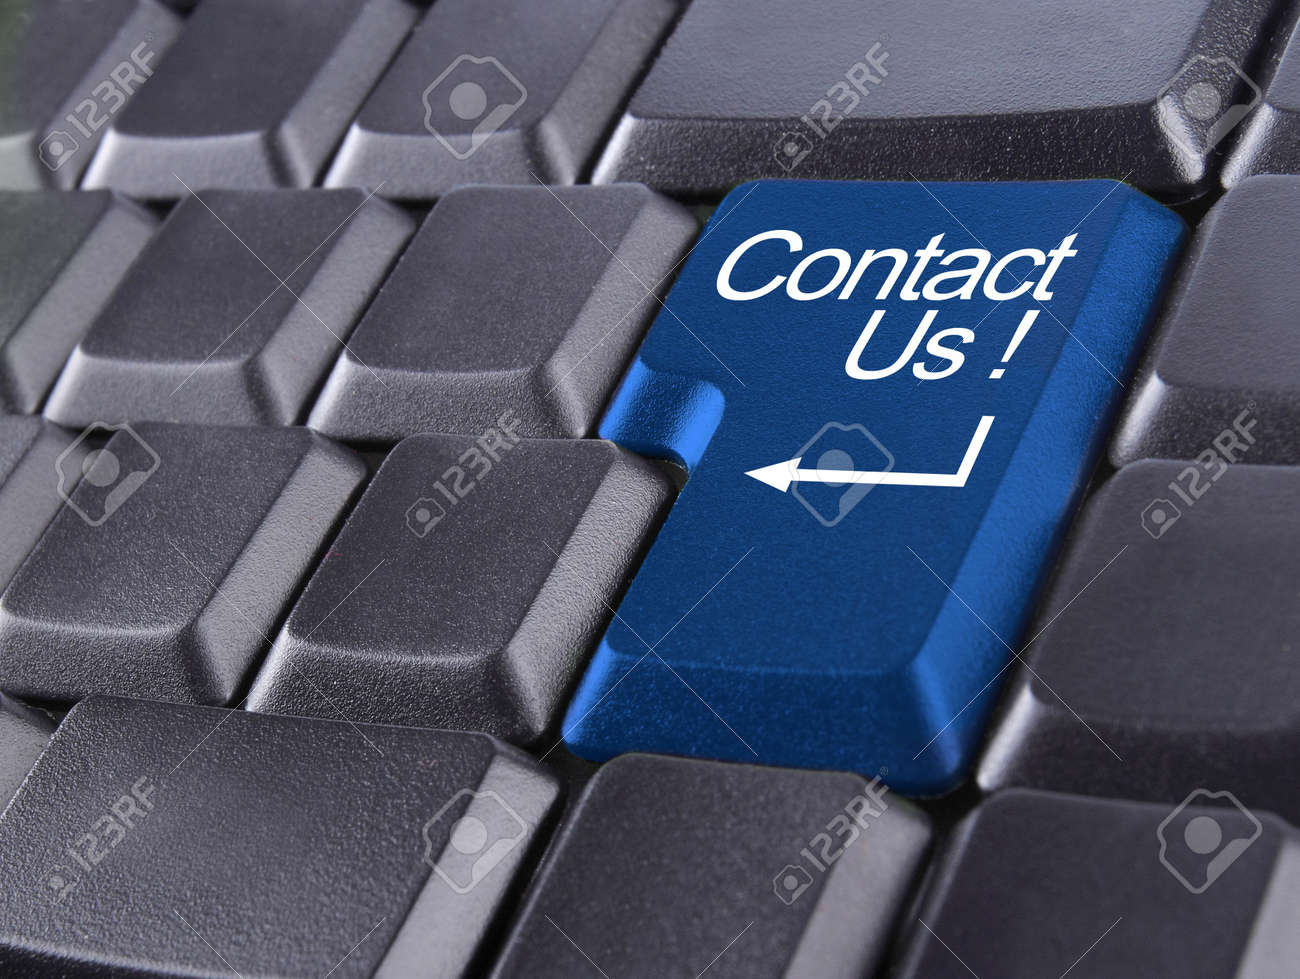 contact us or support concept with computer keyboard button Standard-Bild - 10183982